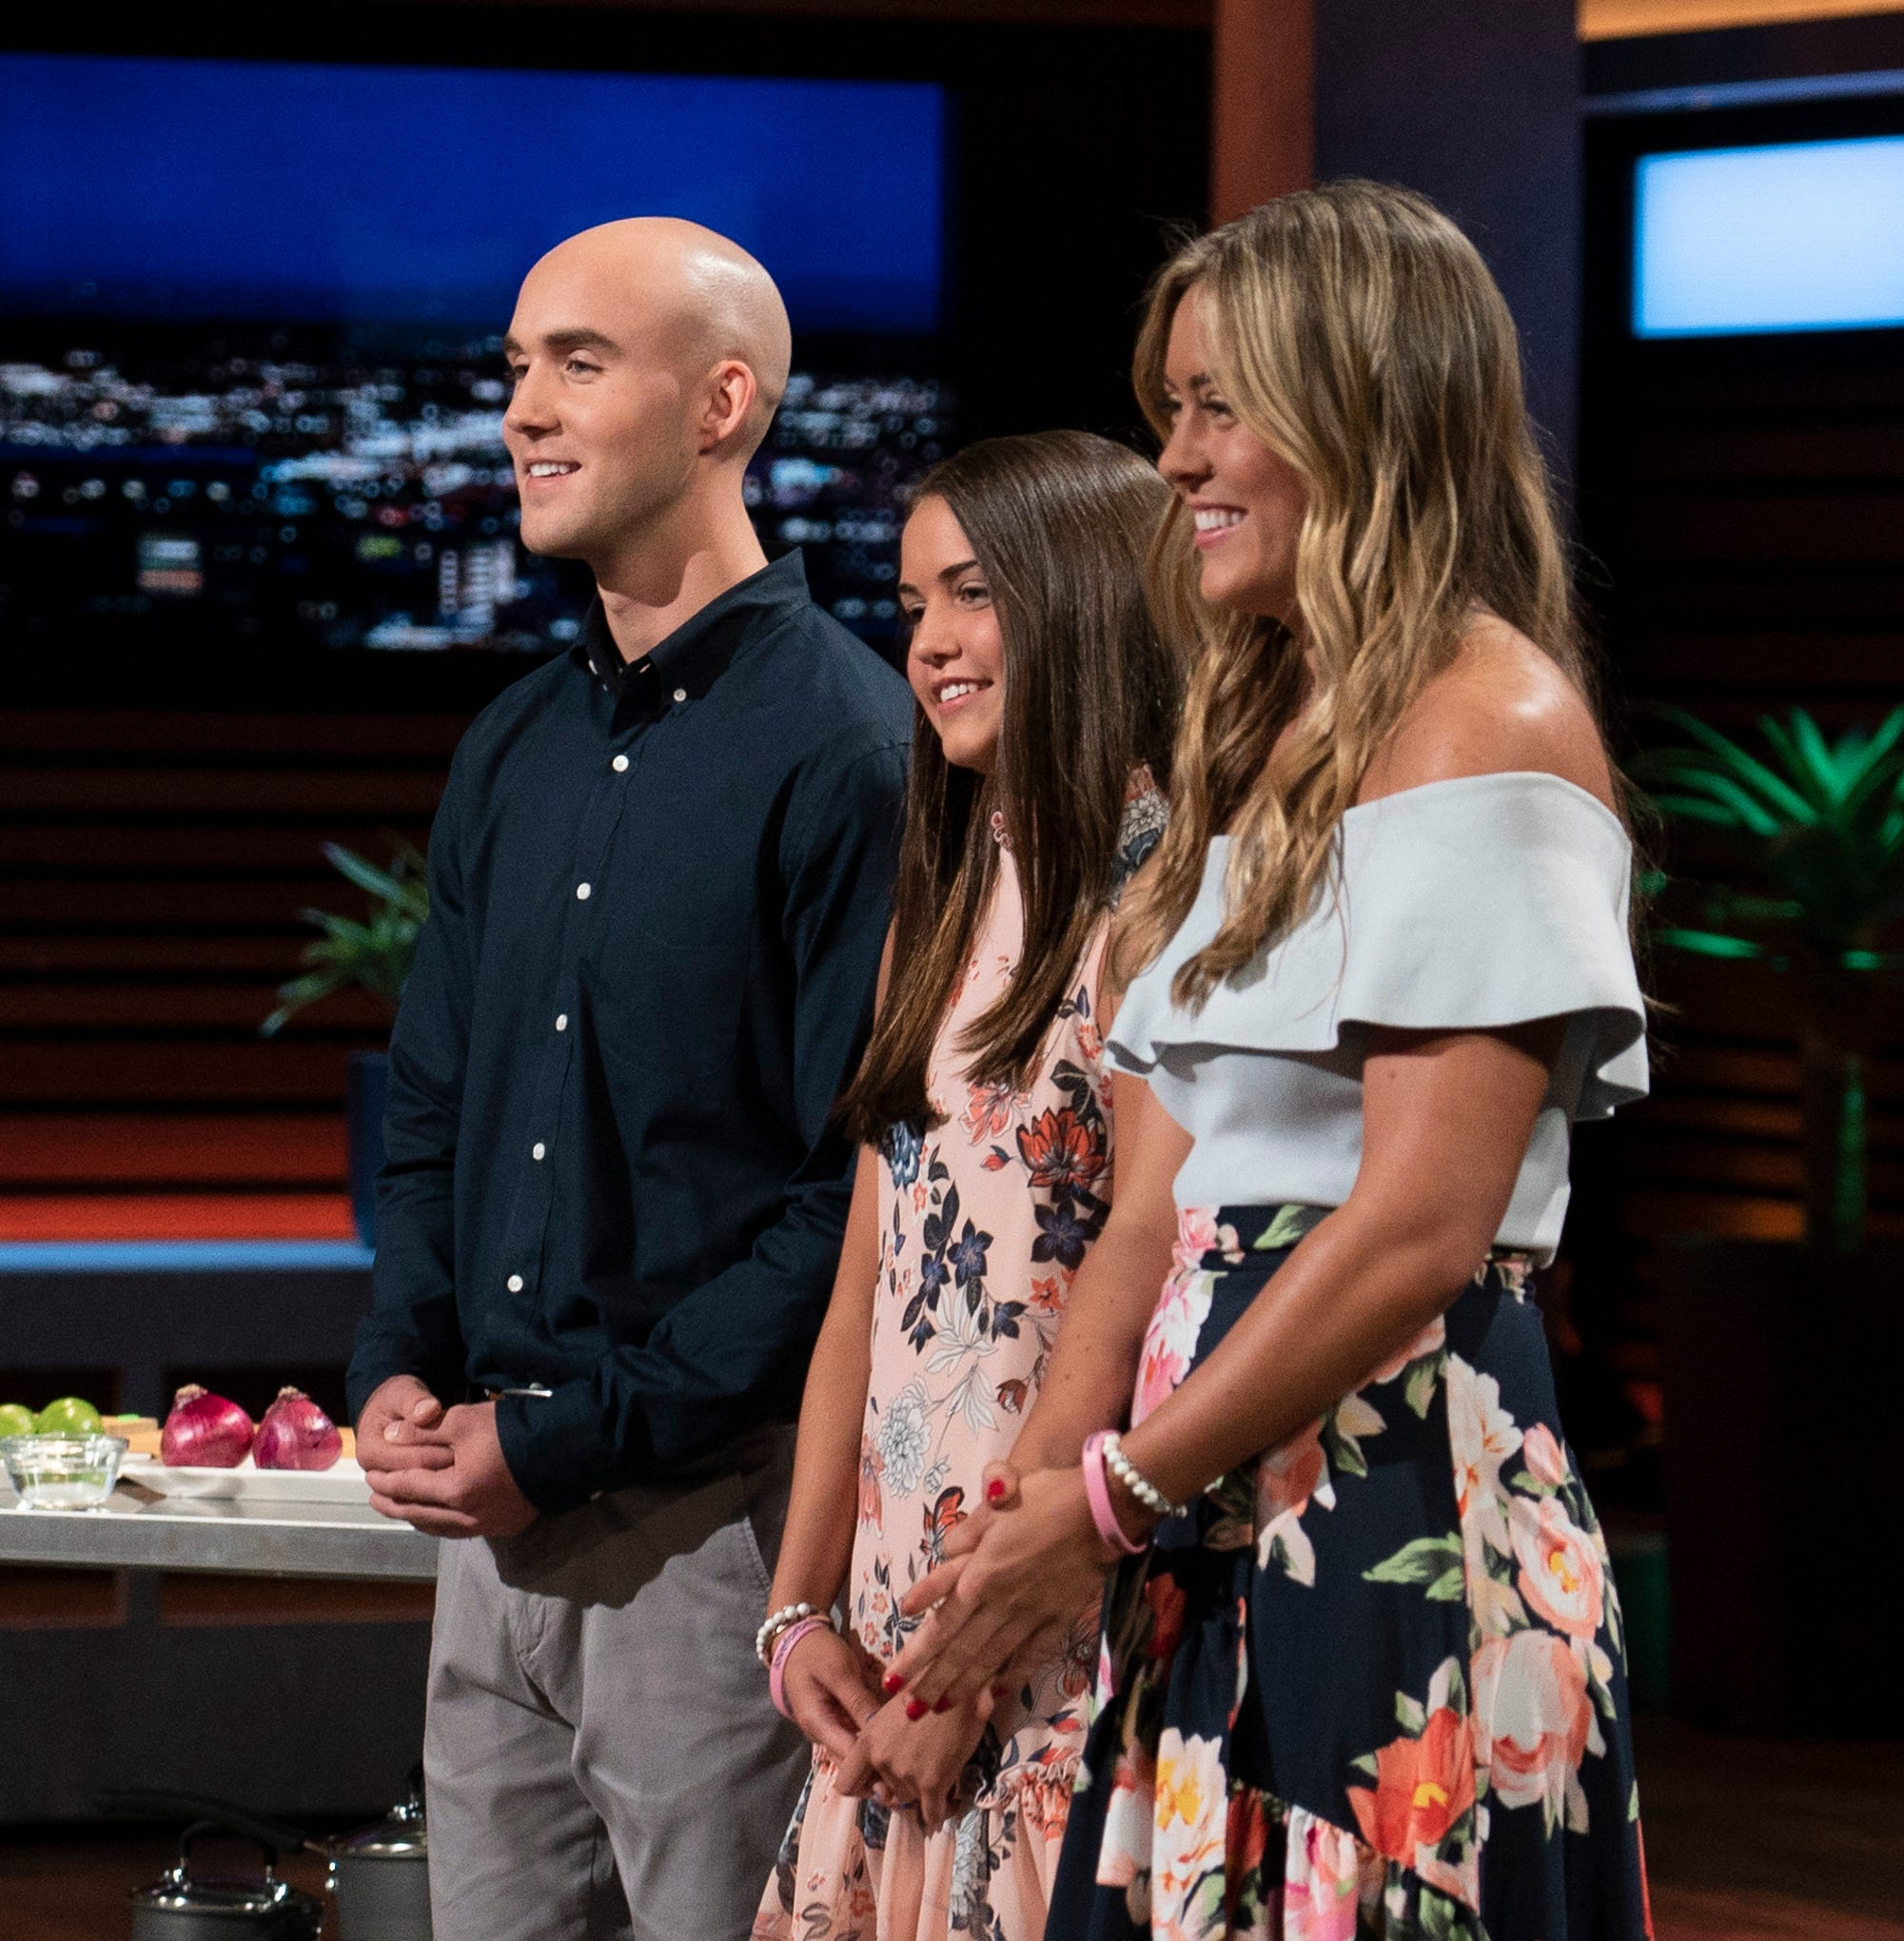 'Shark Tank': Teary tribute to firefighter dad yields $1 million (and counting) in orders